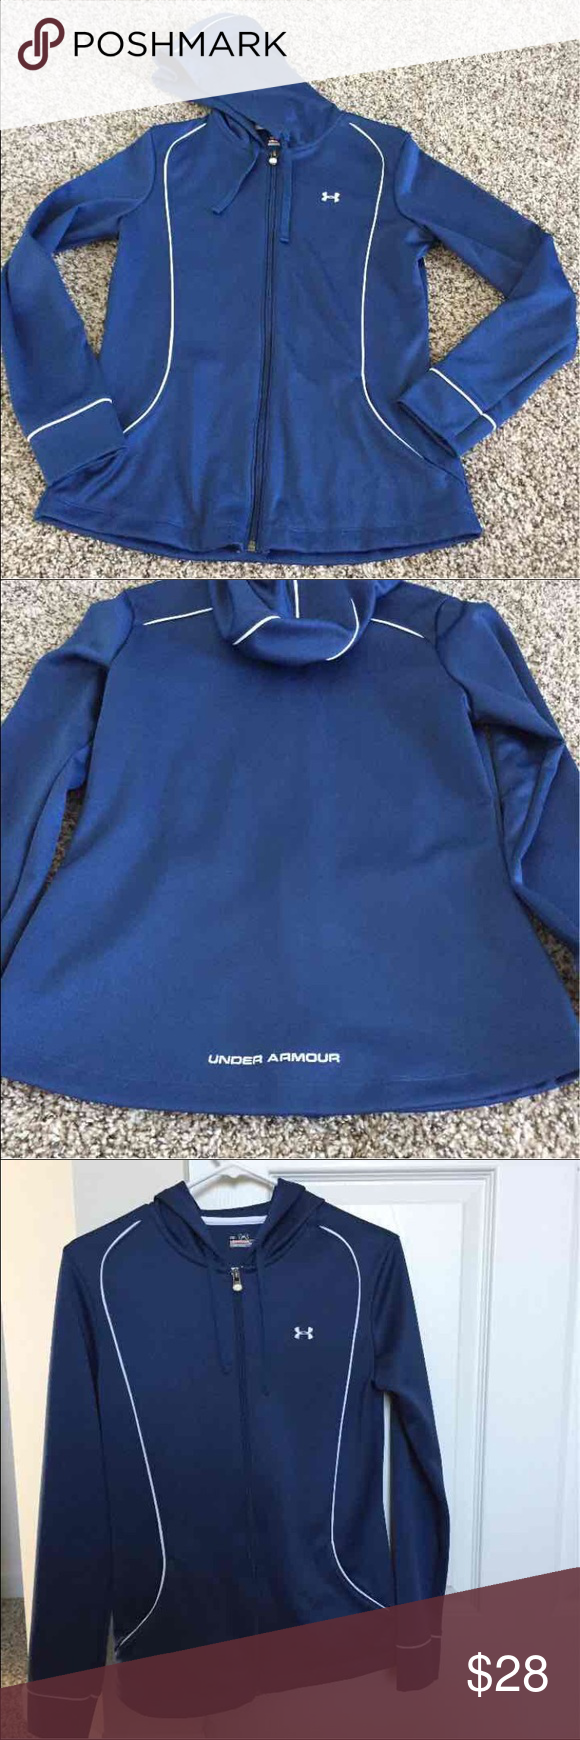 Blue Under Armour jacket Blue Under Armour jacket. Size S. Under Armour Jackets & Coats